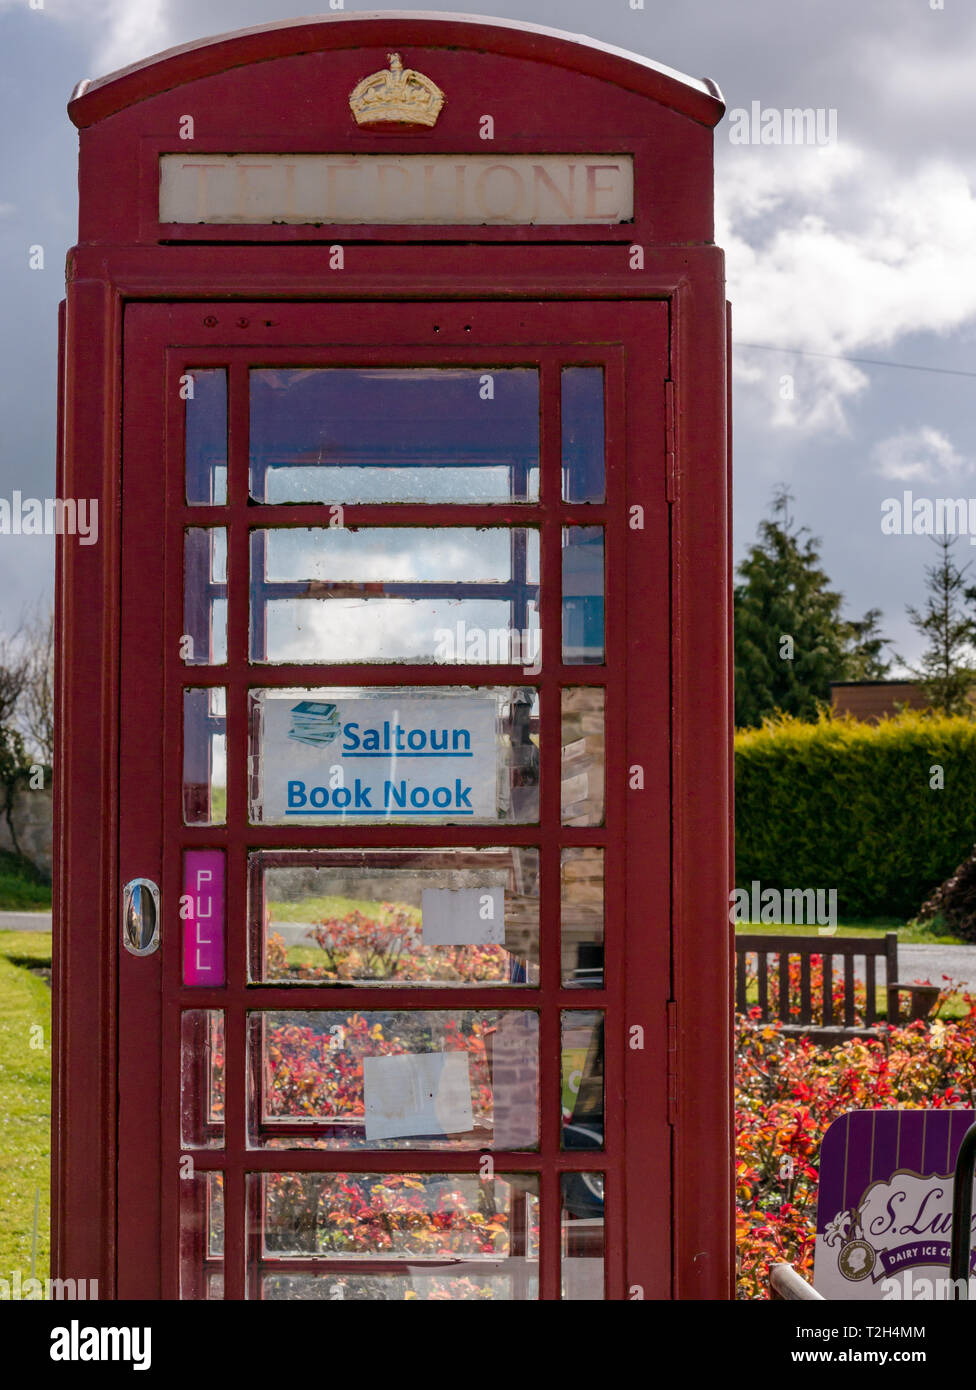 Old red telephone box converted to book lending library in conservation village, East Saltoun, East Lothian, Scotland, UK - Stock Image